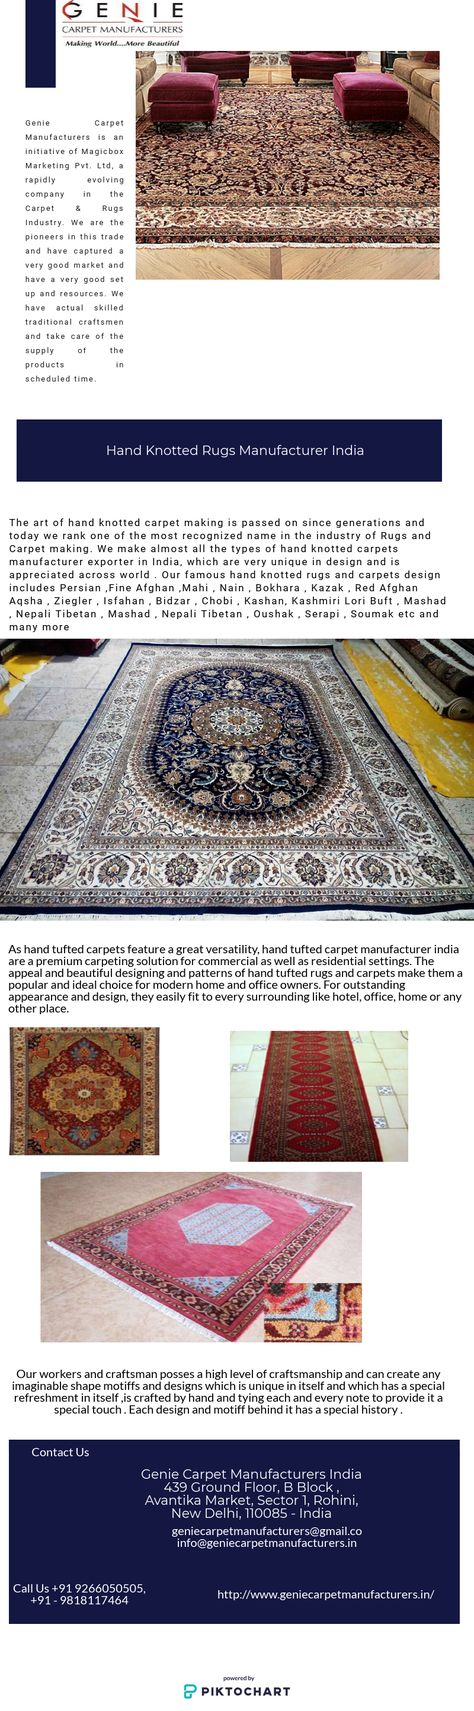 Genie Carpet Manufacturers India Make Almost All Types Of Hand Knotted Rugs Manufacturer Carpet Exporter Which Are With Images Hand Knotted Rugs Rugs Carpet Manufacturers